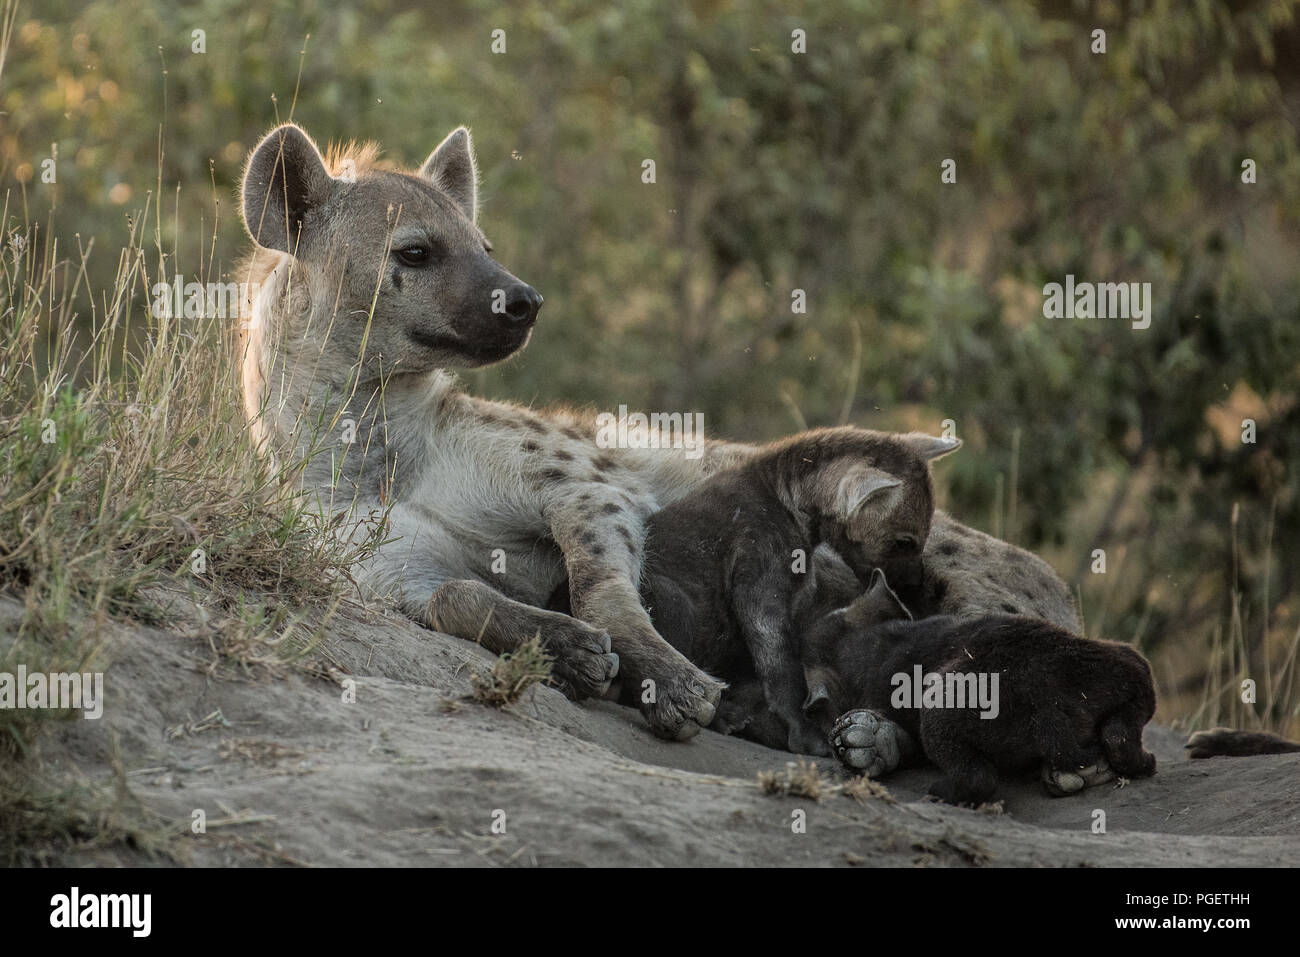 Spotted Hyena mother lying on ground with babies nursing beside her. - Stock Image